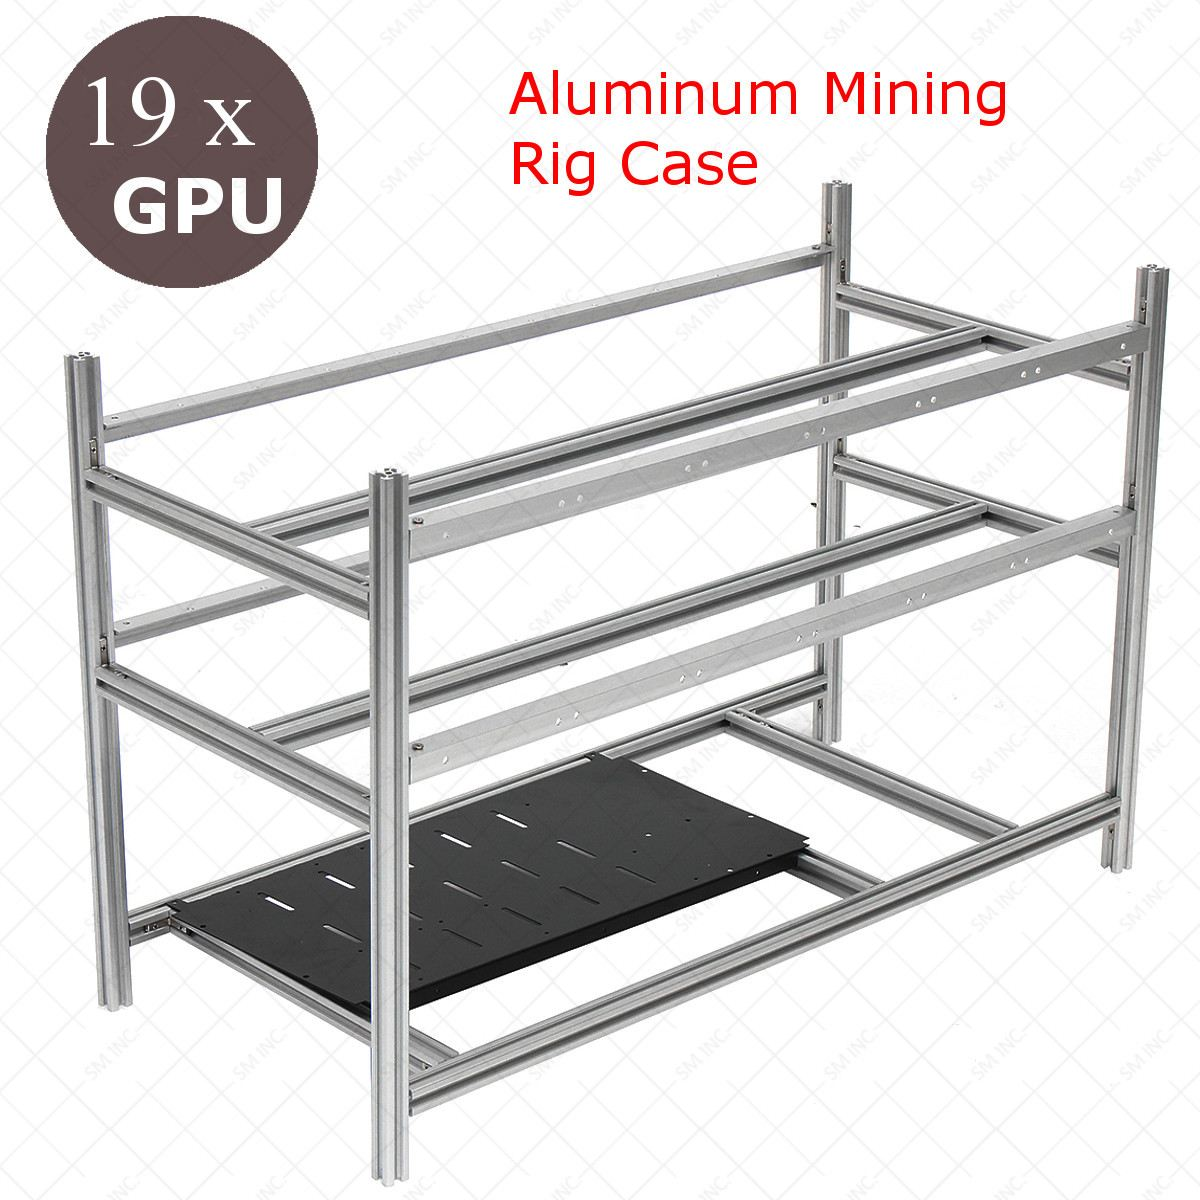 Stackable Open Air Mining Rig Frame Miner Case 19 GPU ETC BTH 3 Power Supply New Computer Mining Case Frame Server Chassis